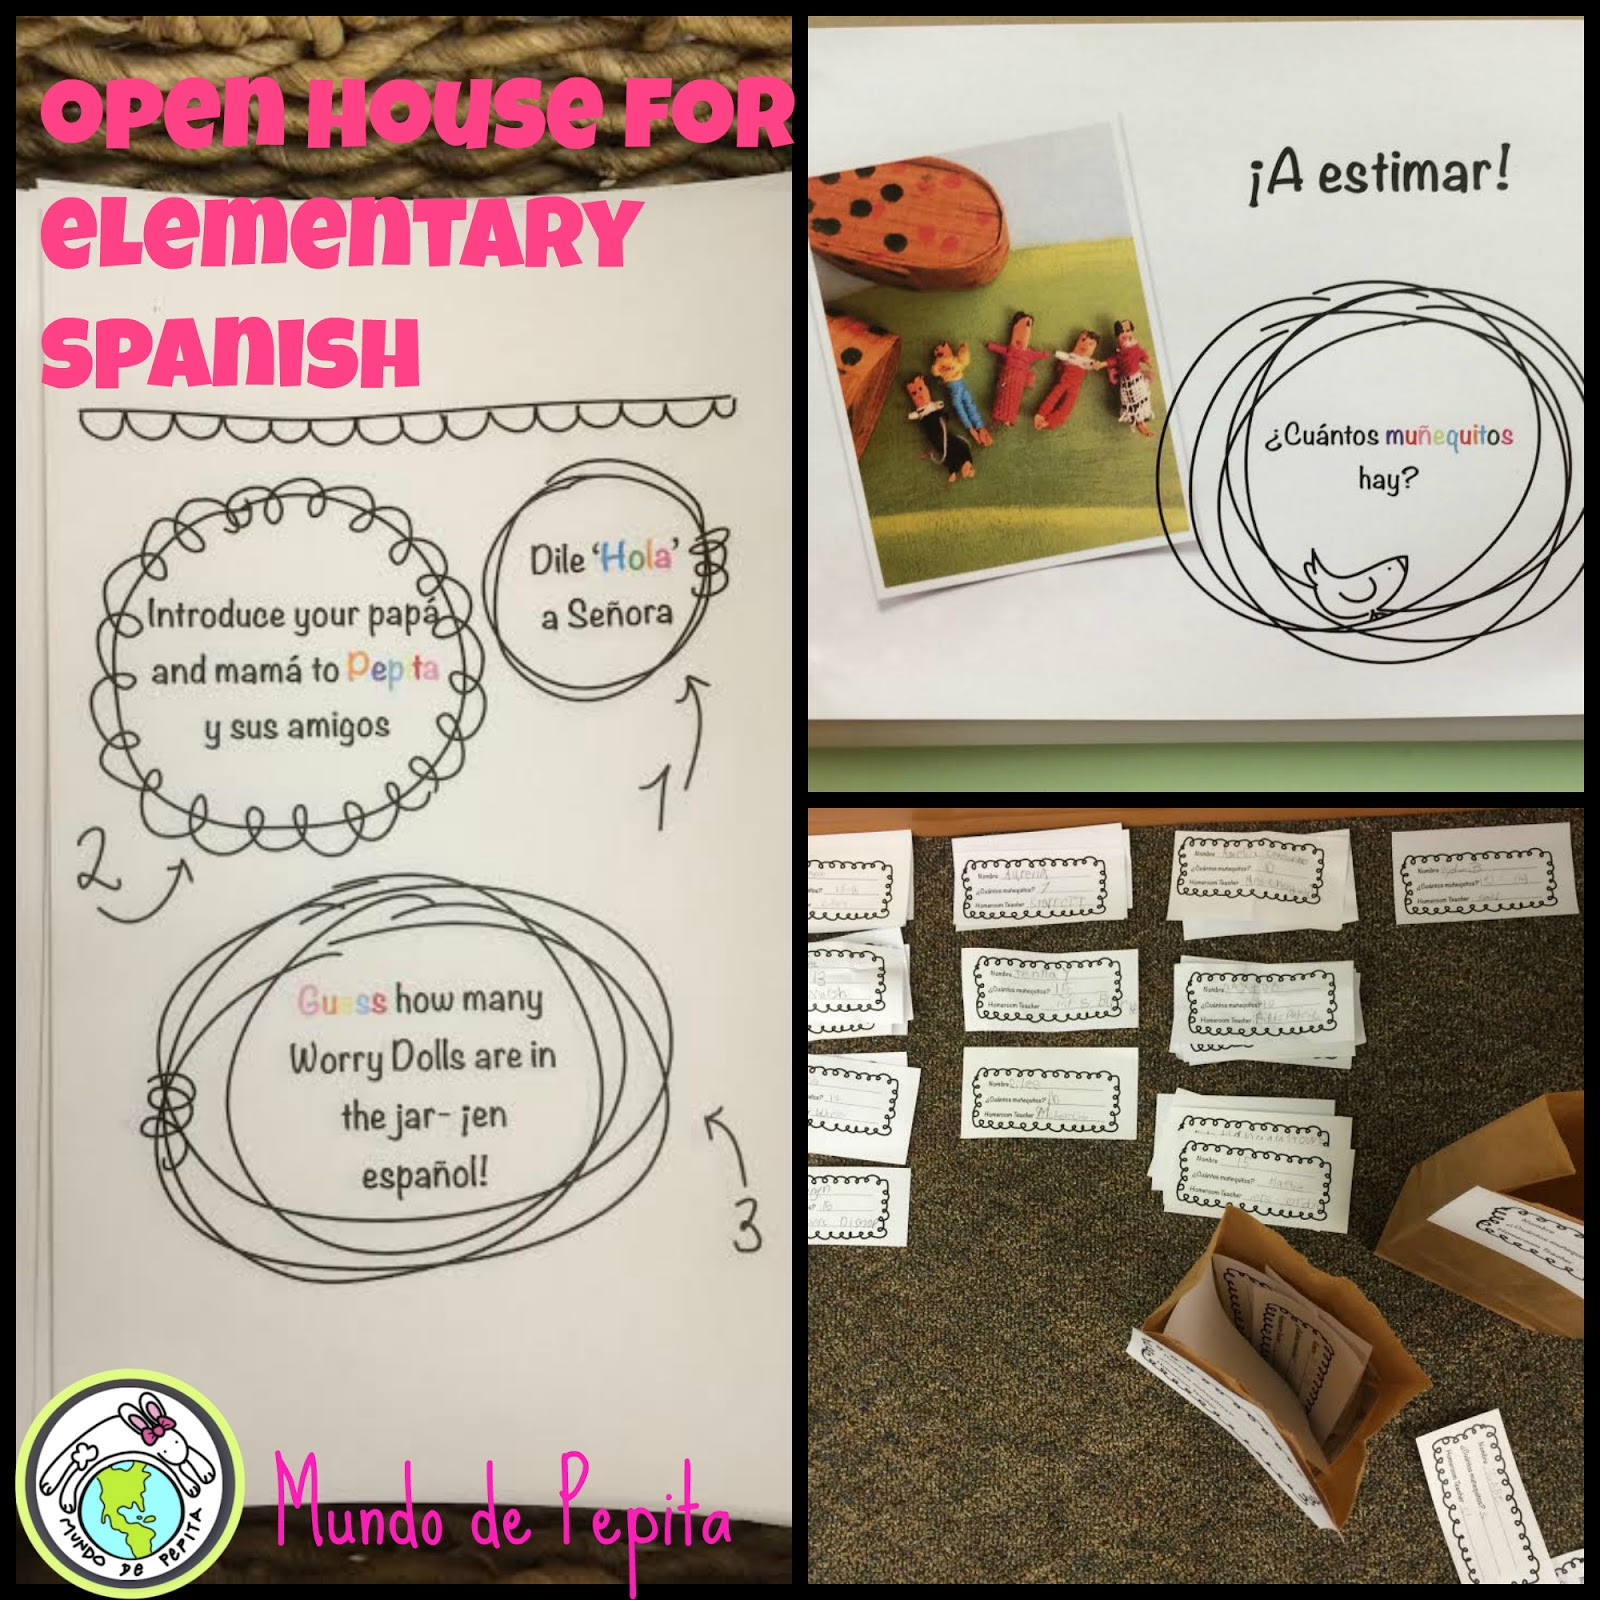 Mundo de pepita open house activities for elementary for Open house spain